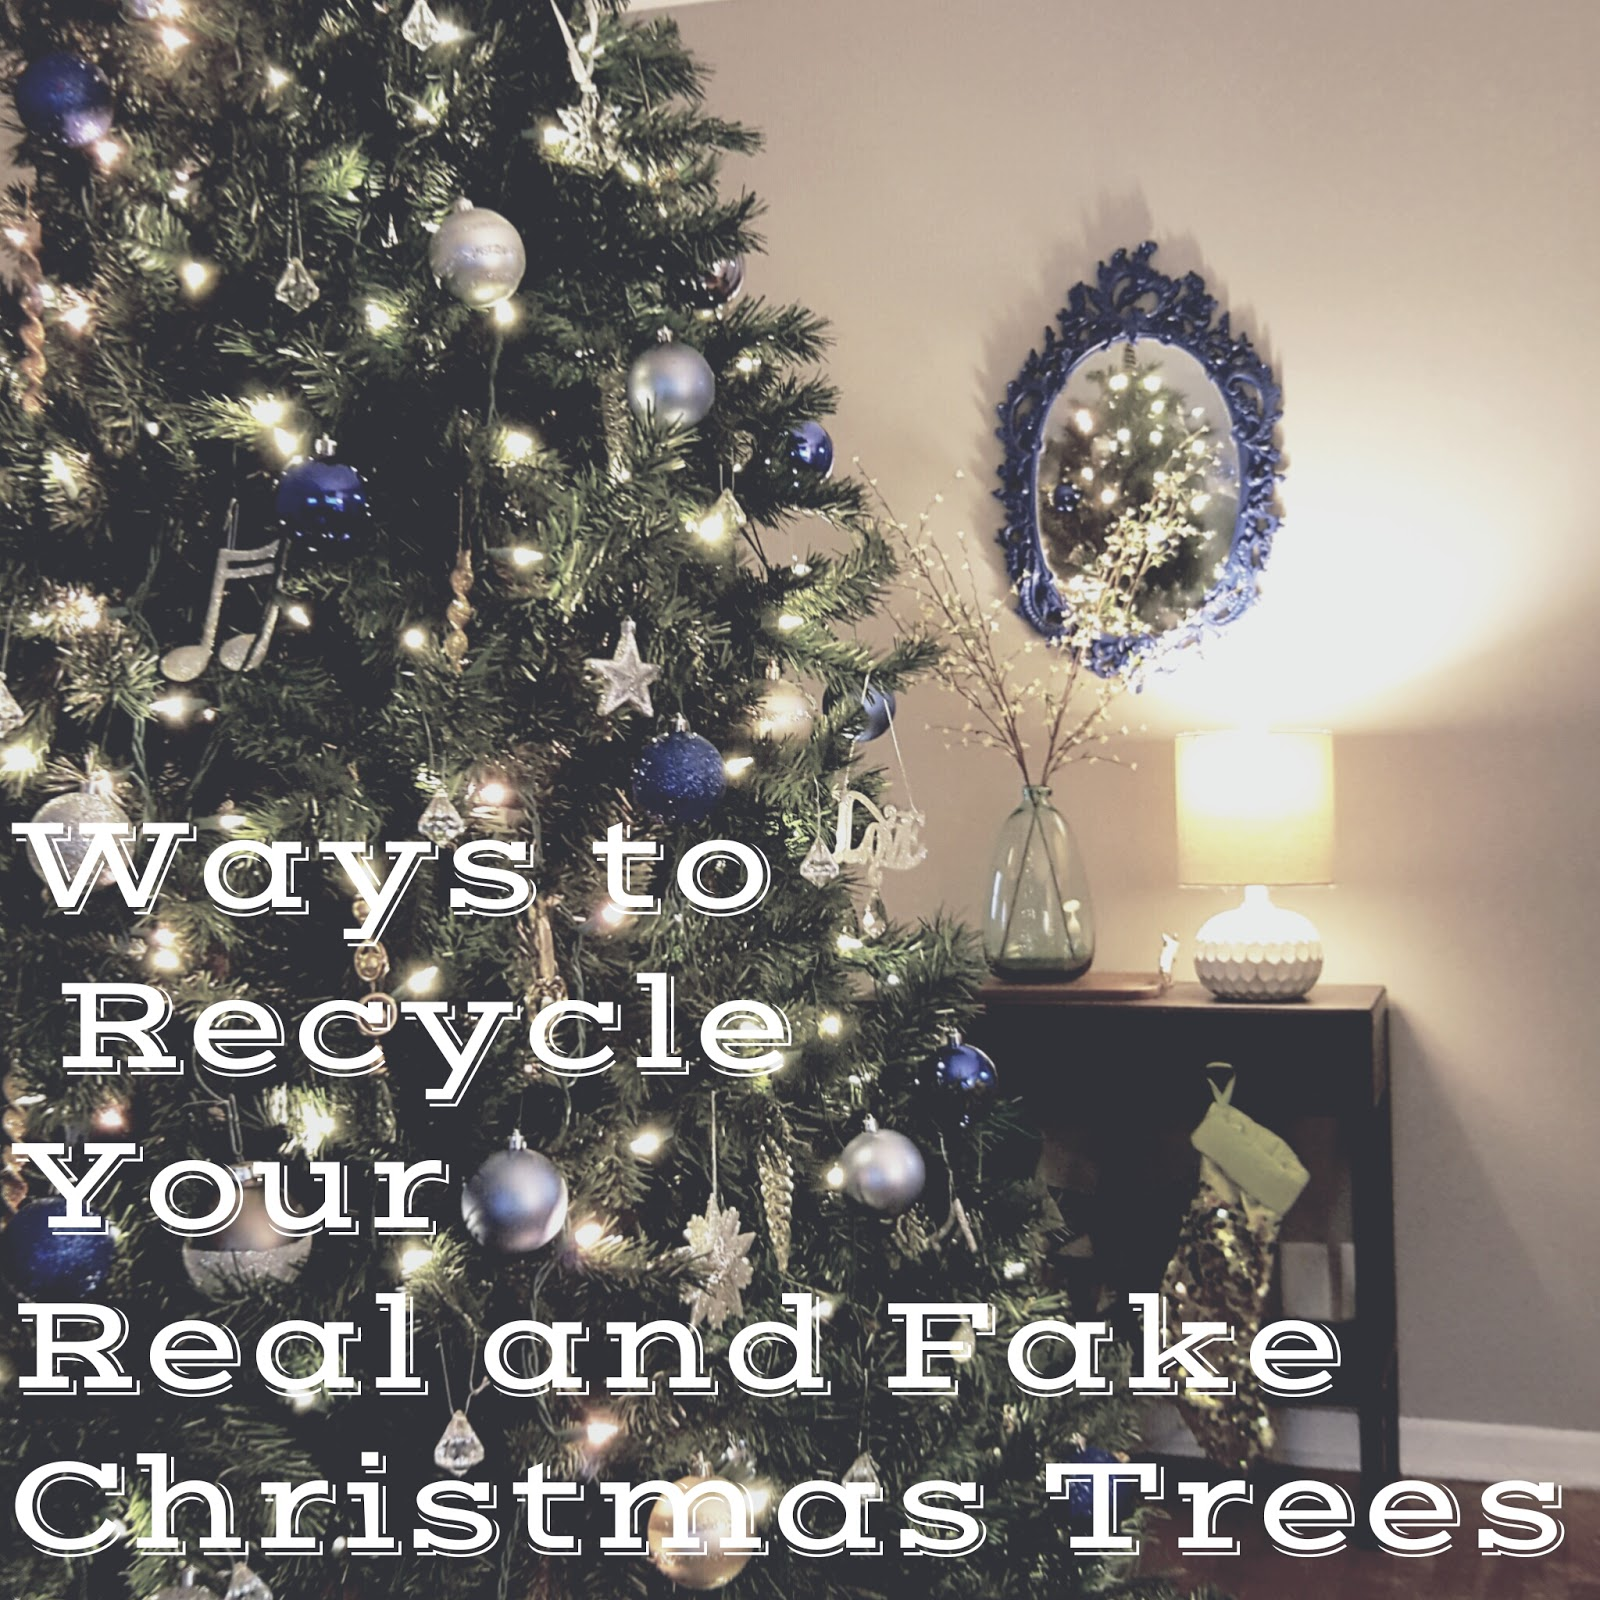 Zero Waste Nerd: 8 Ways to Recycle Your Real and Fake Christmas Trees